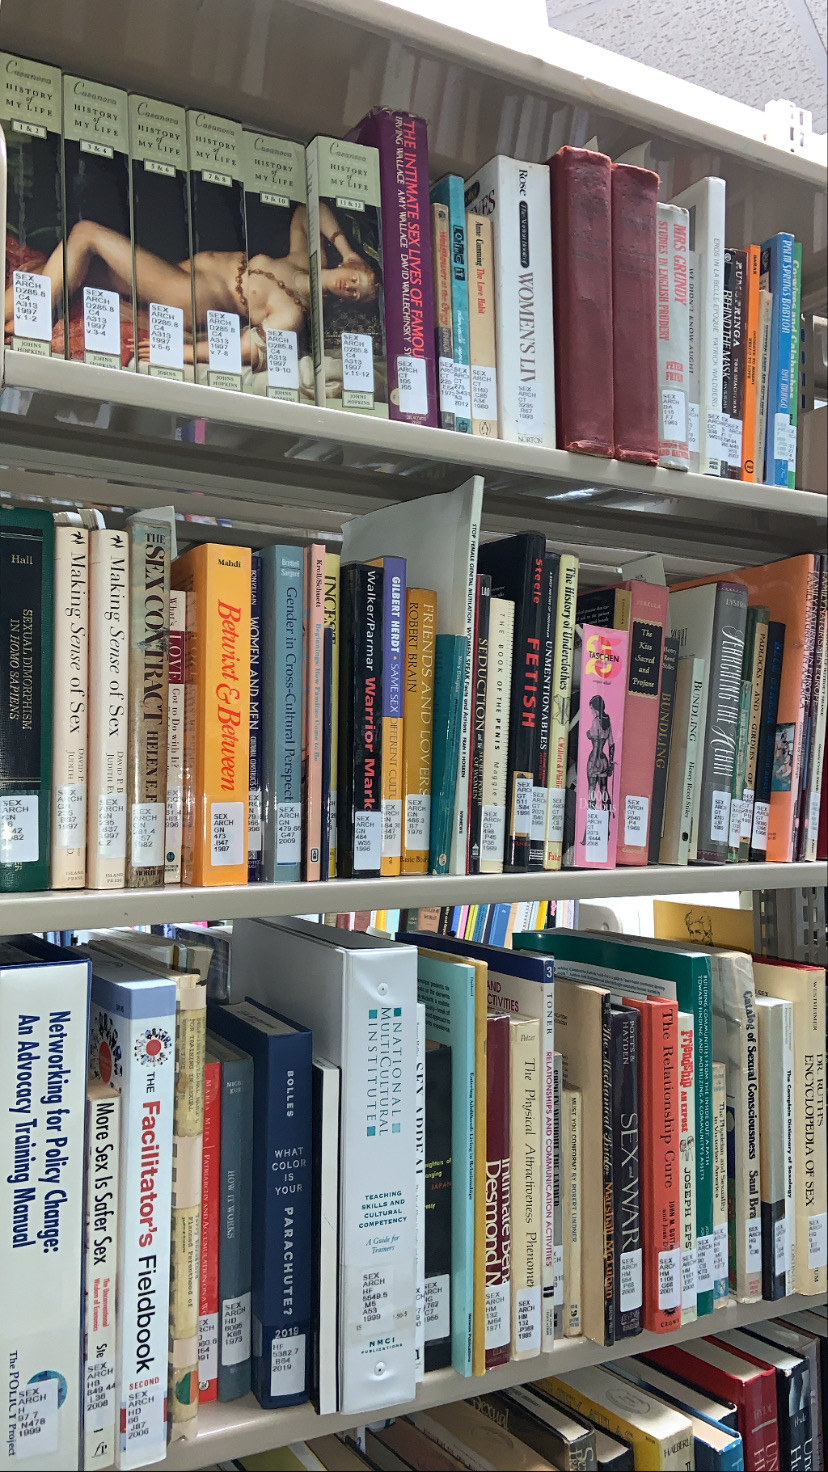 Human sexuality books on shelves inside of a library